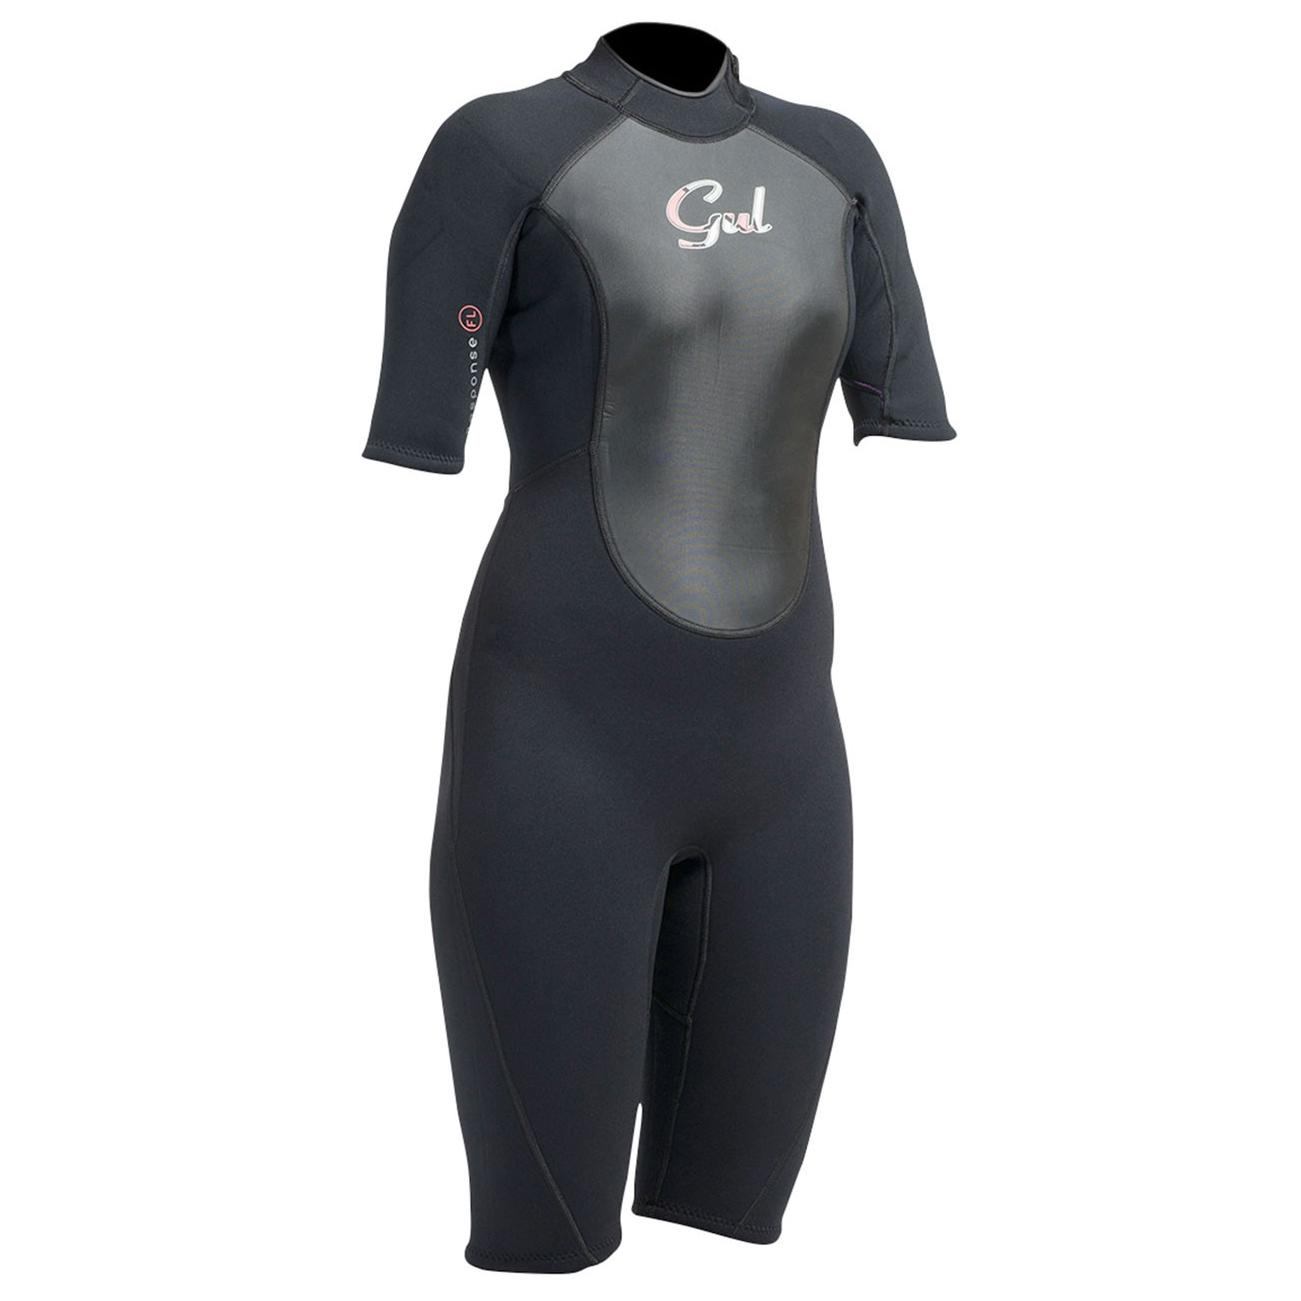 373a75d79c Gul Response Ladies 3 2mm Shorty Wetsuit – Watersports Warehouse